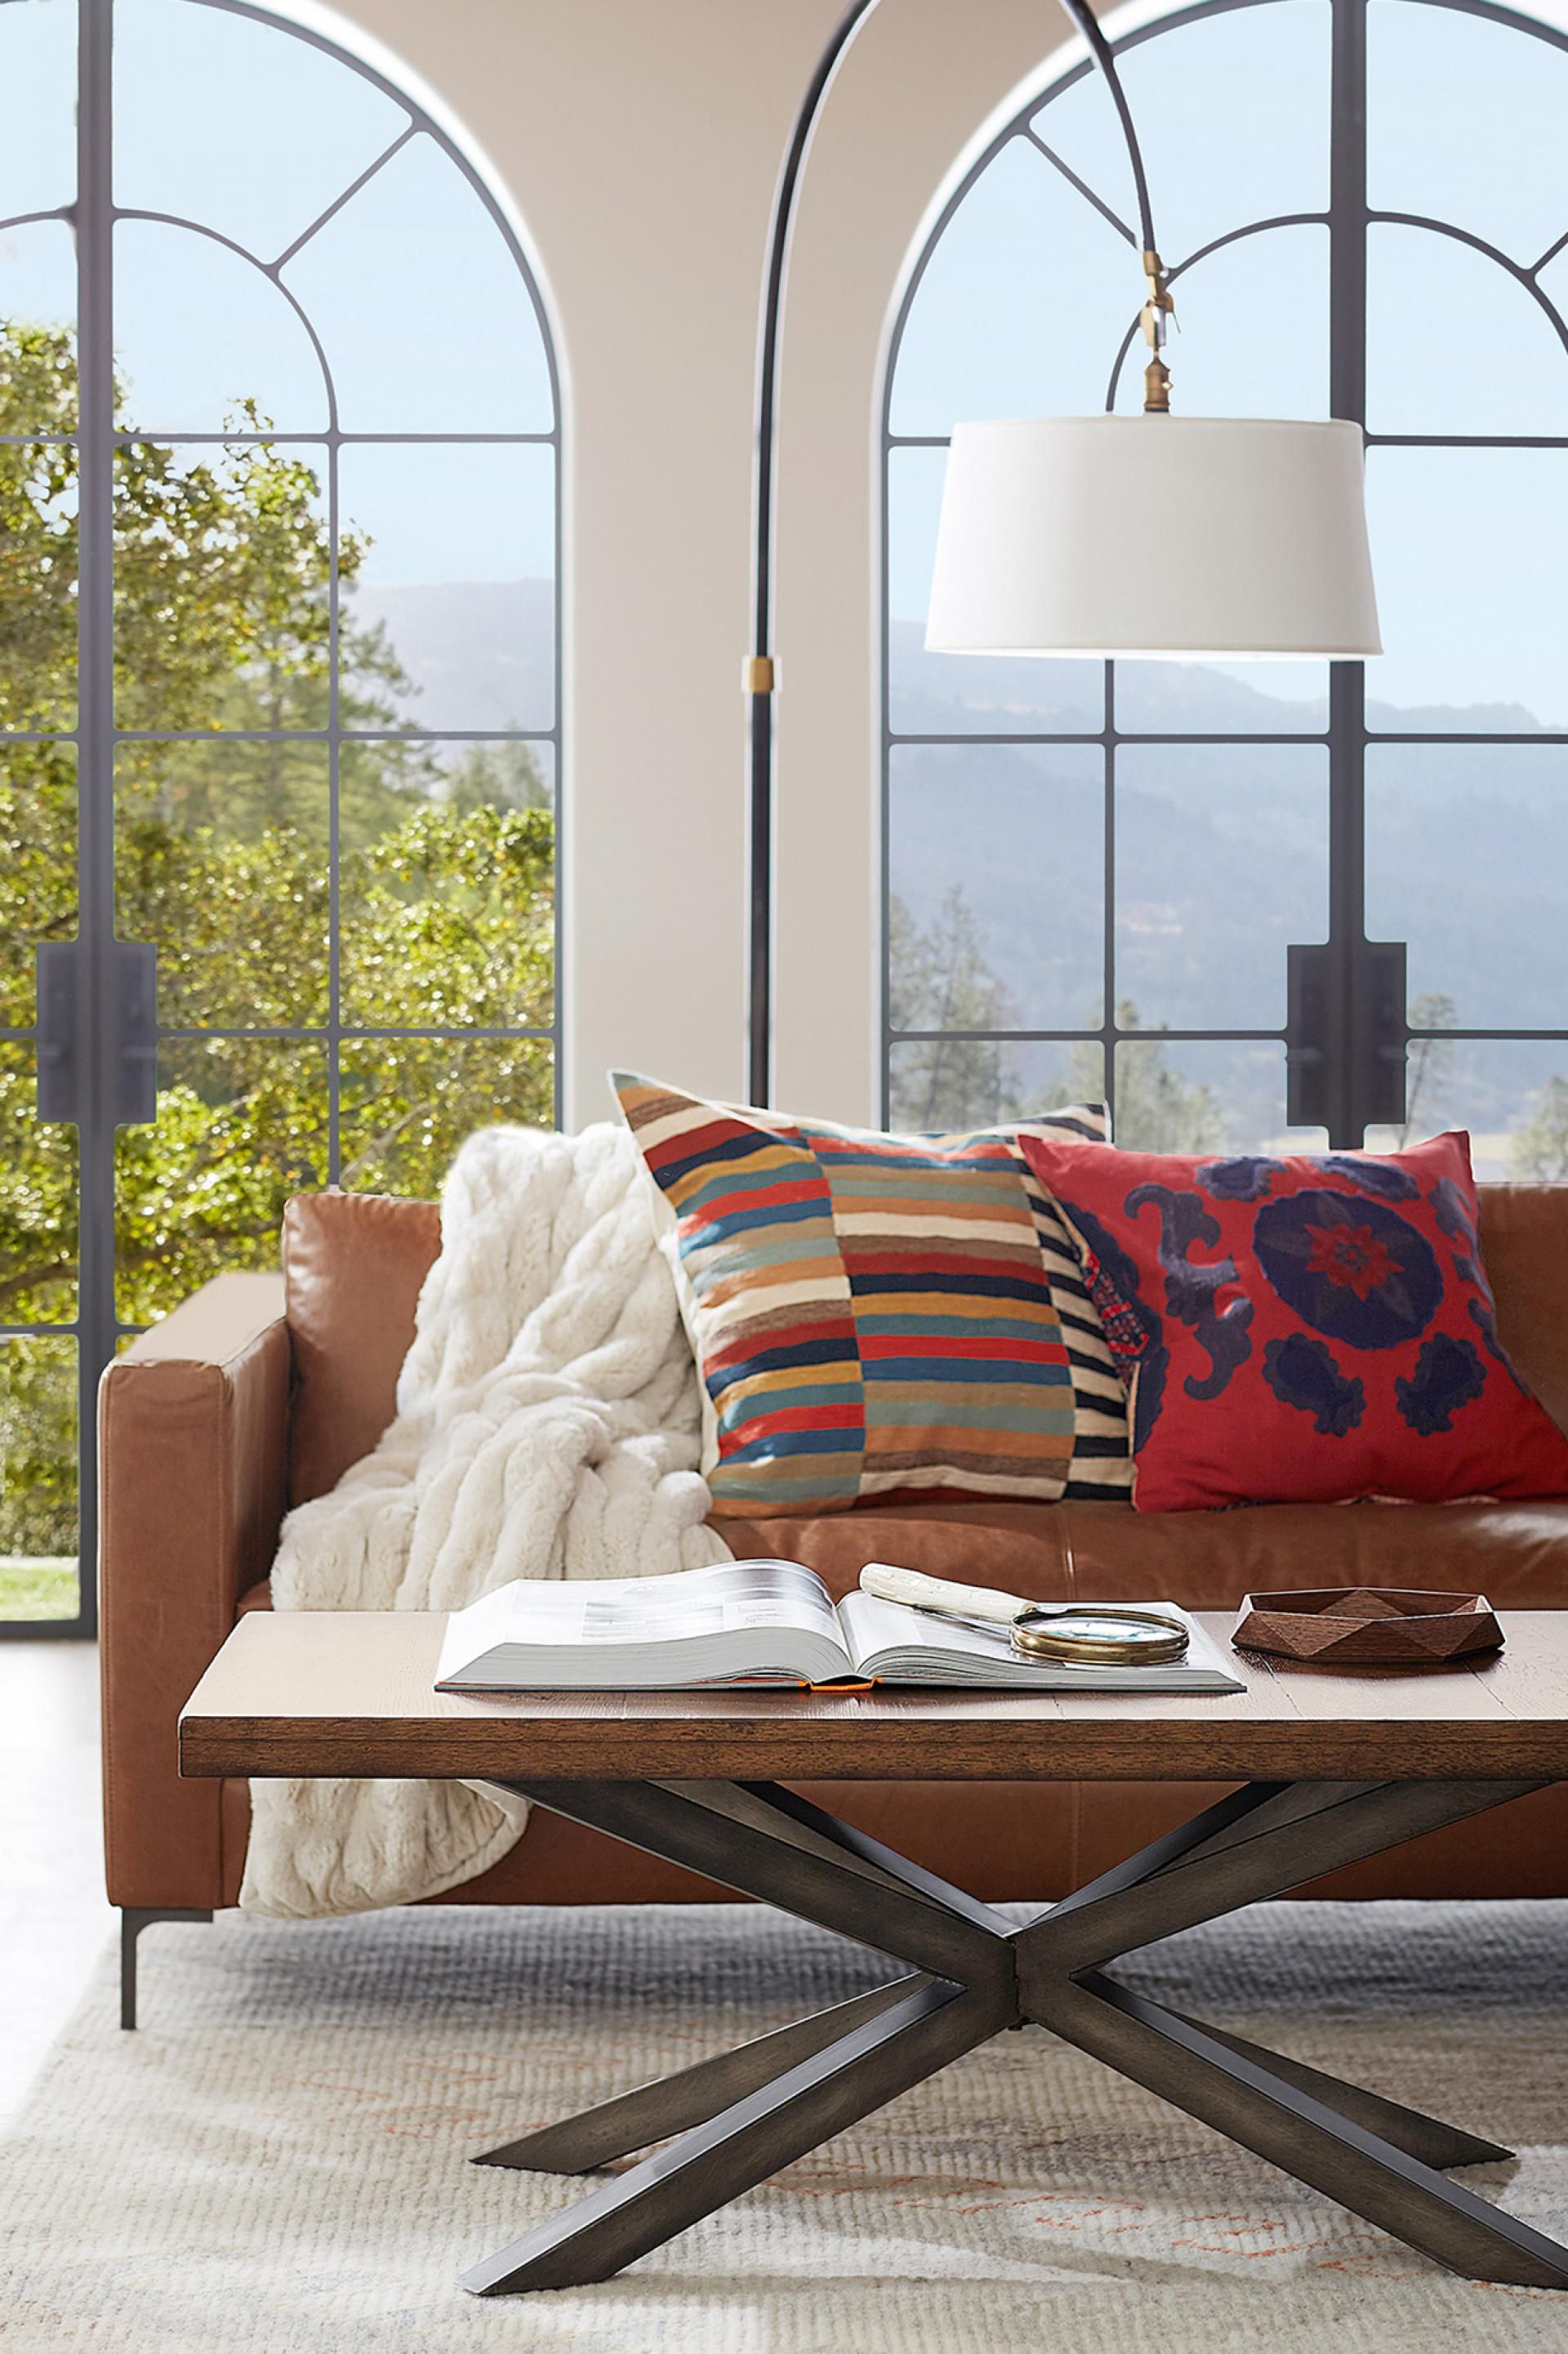 Pottery Barn's new range. (With images) Pottery barn